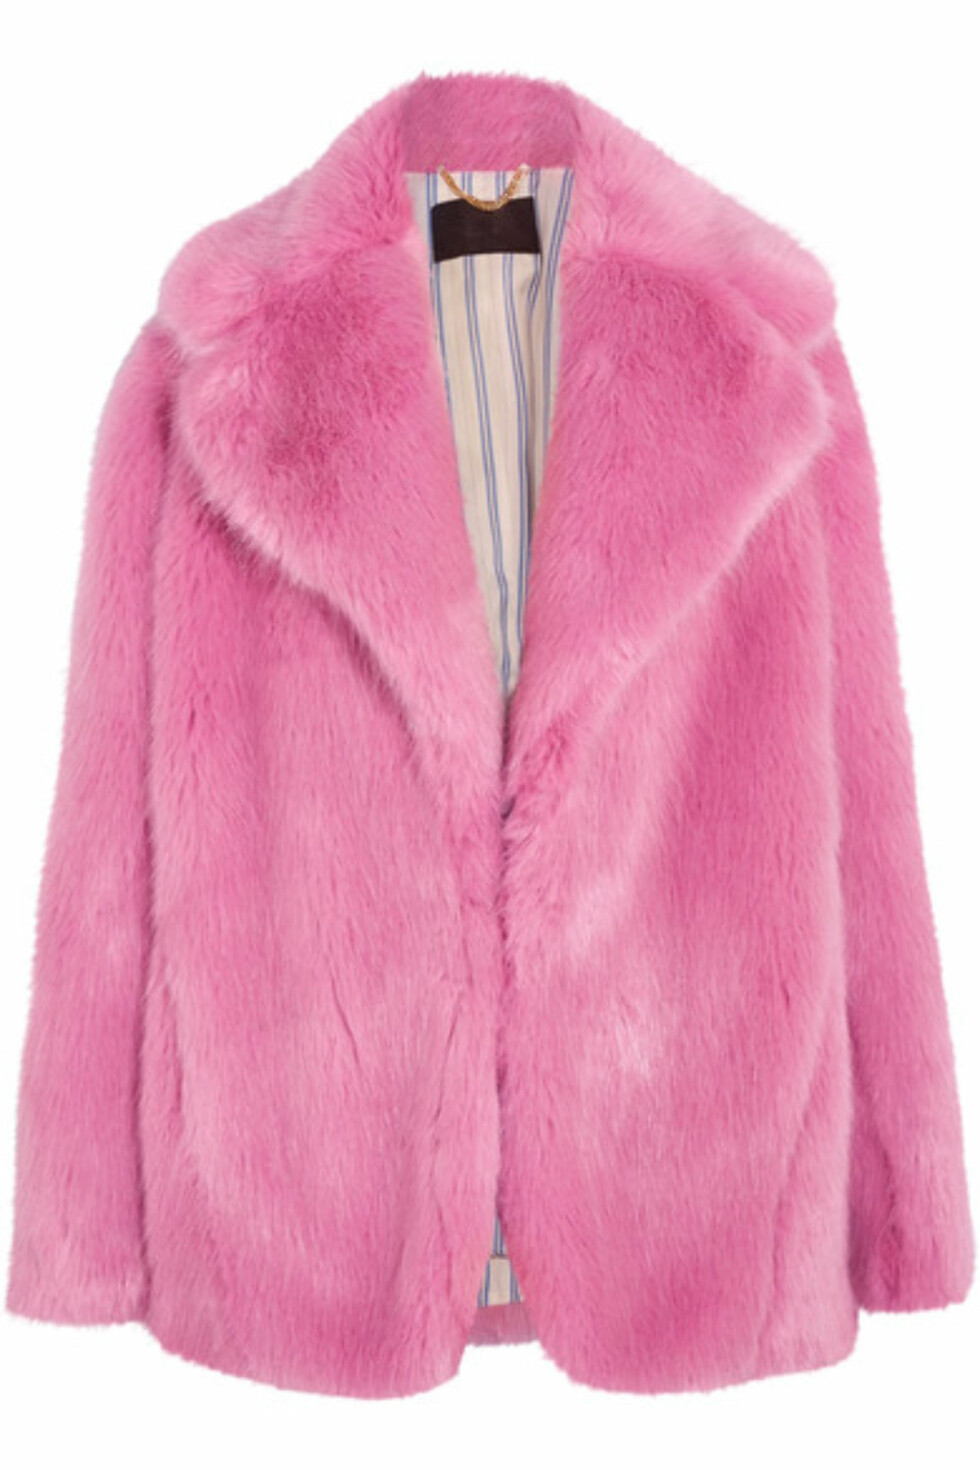 Fuskepels fra J.CREW via Net-a-porter.com | kr 5752 | https://www.net-a-porter.com/no/en/product/756032/JCrew/madison-faux-fur-coat